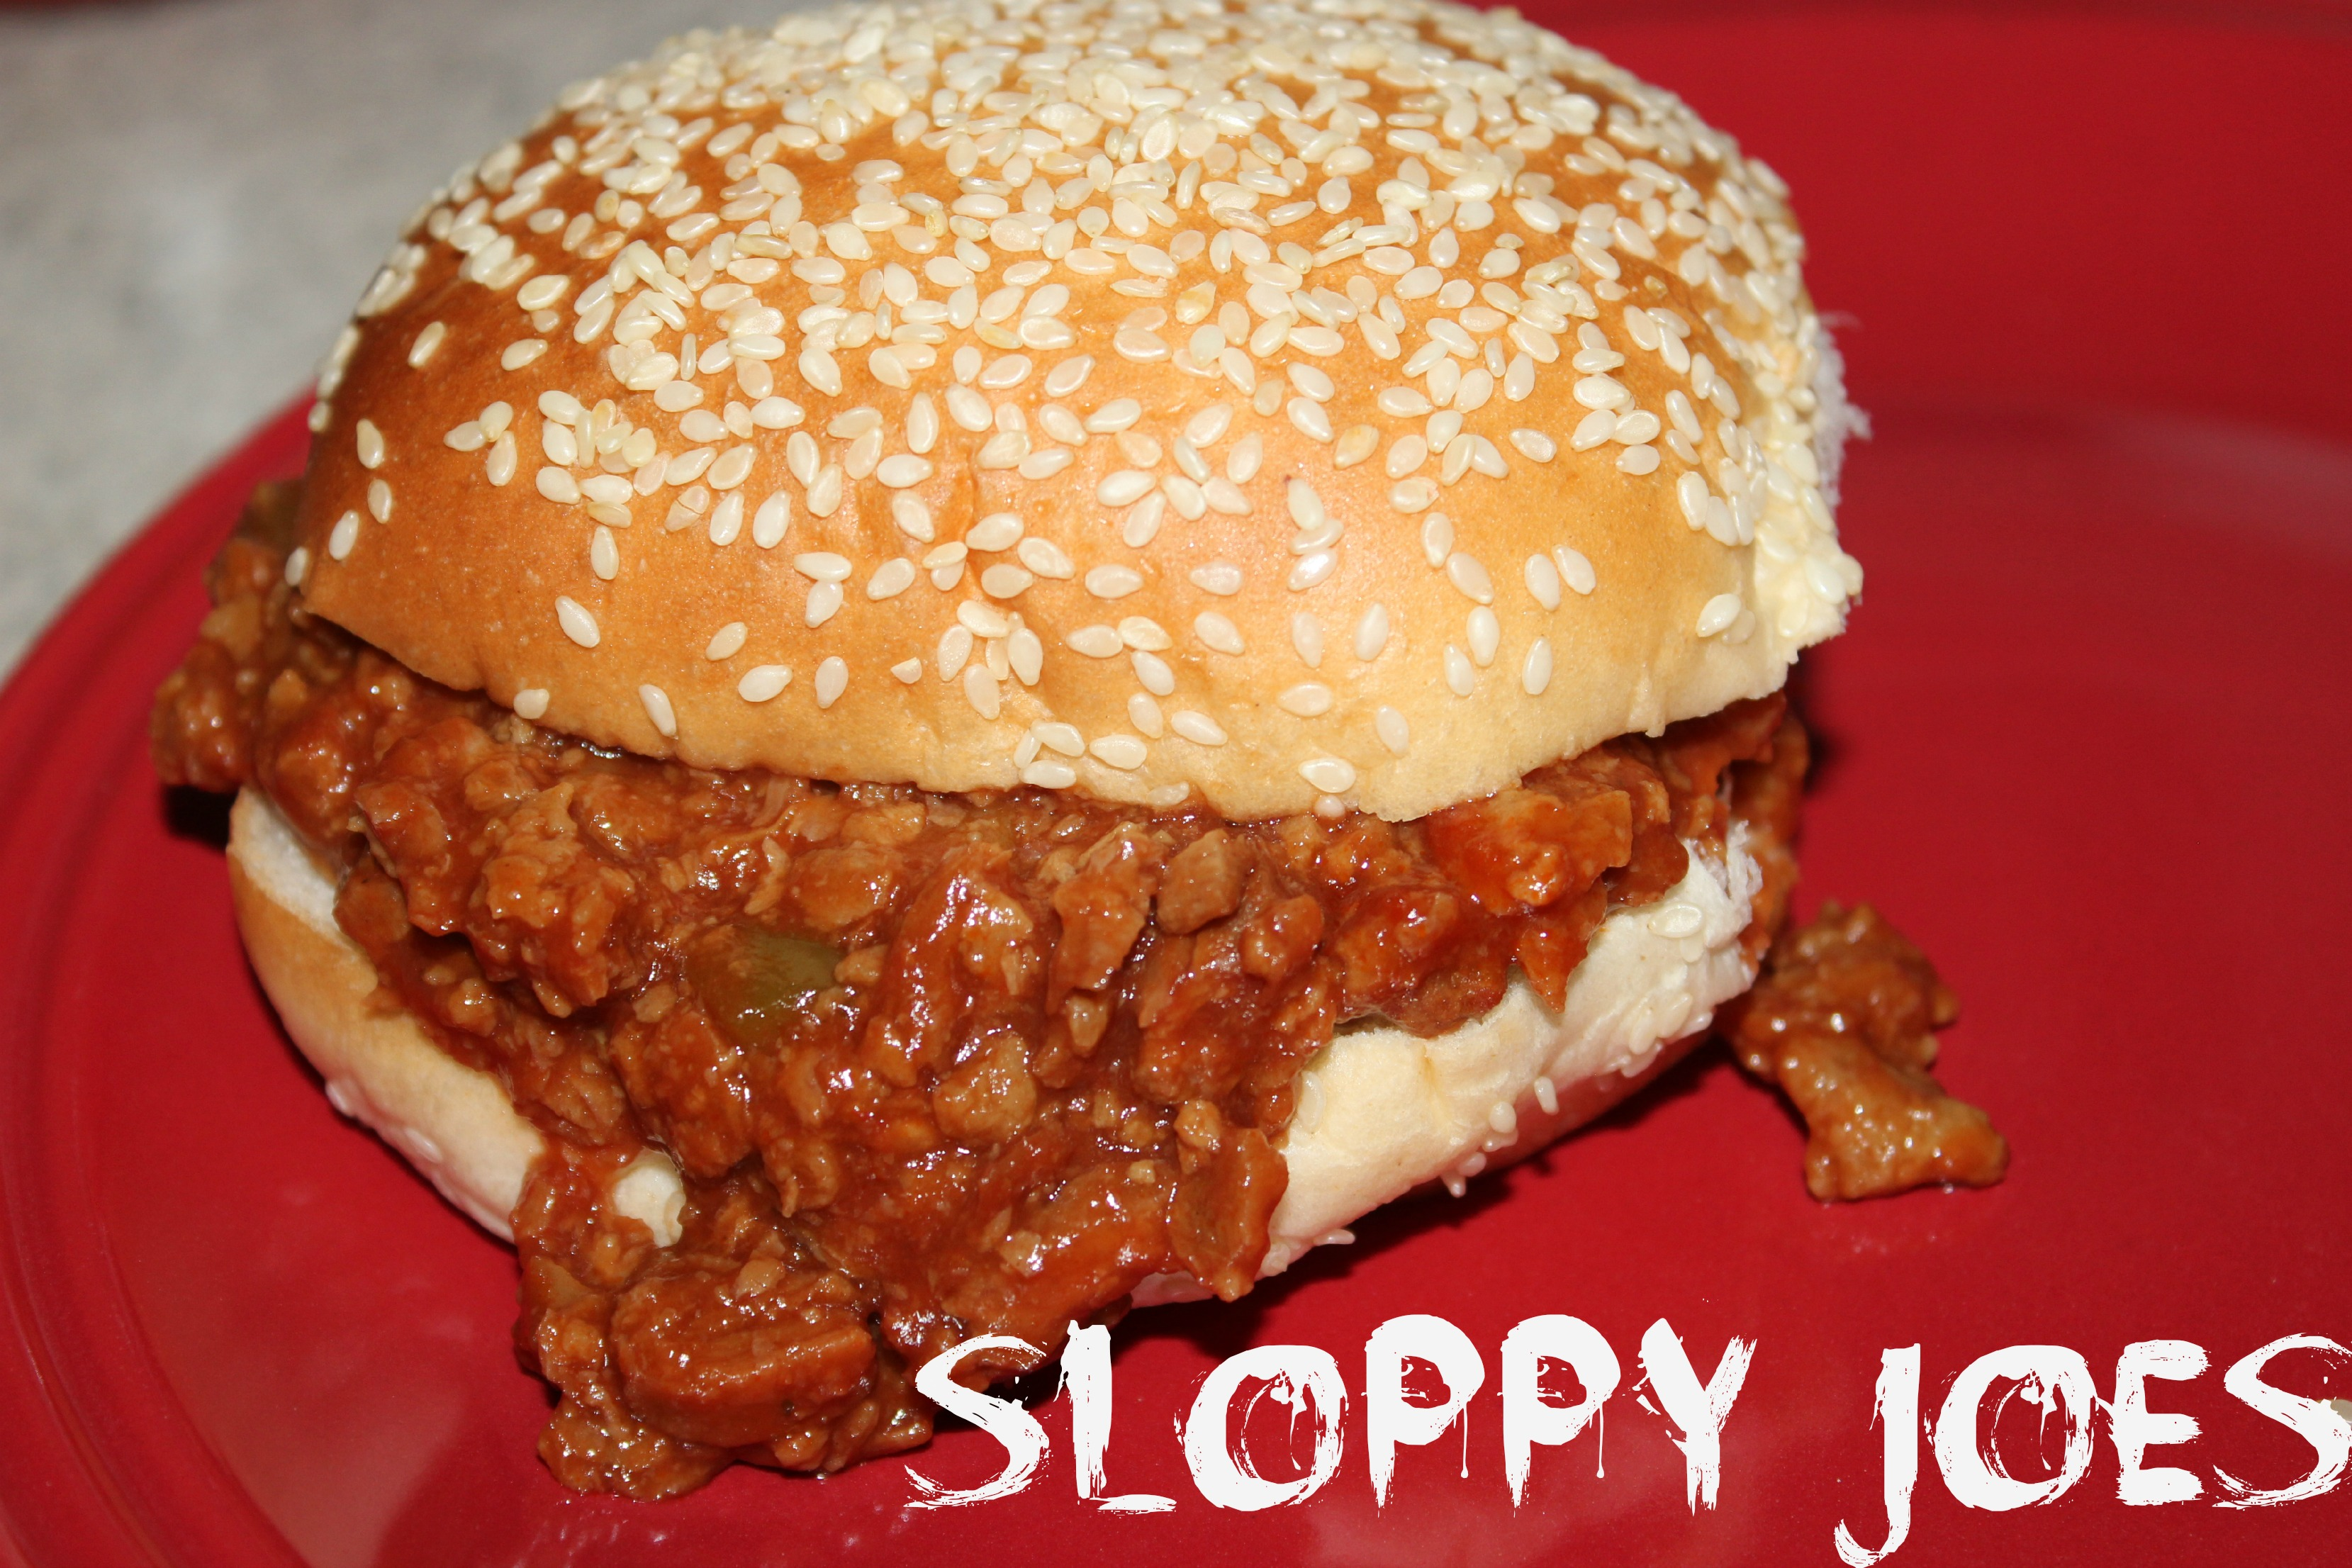 all this thinking about sloppy joes led me to sloppy joes dinner